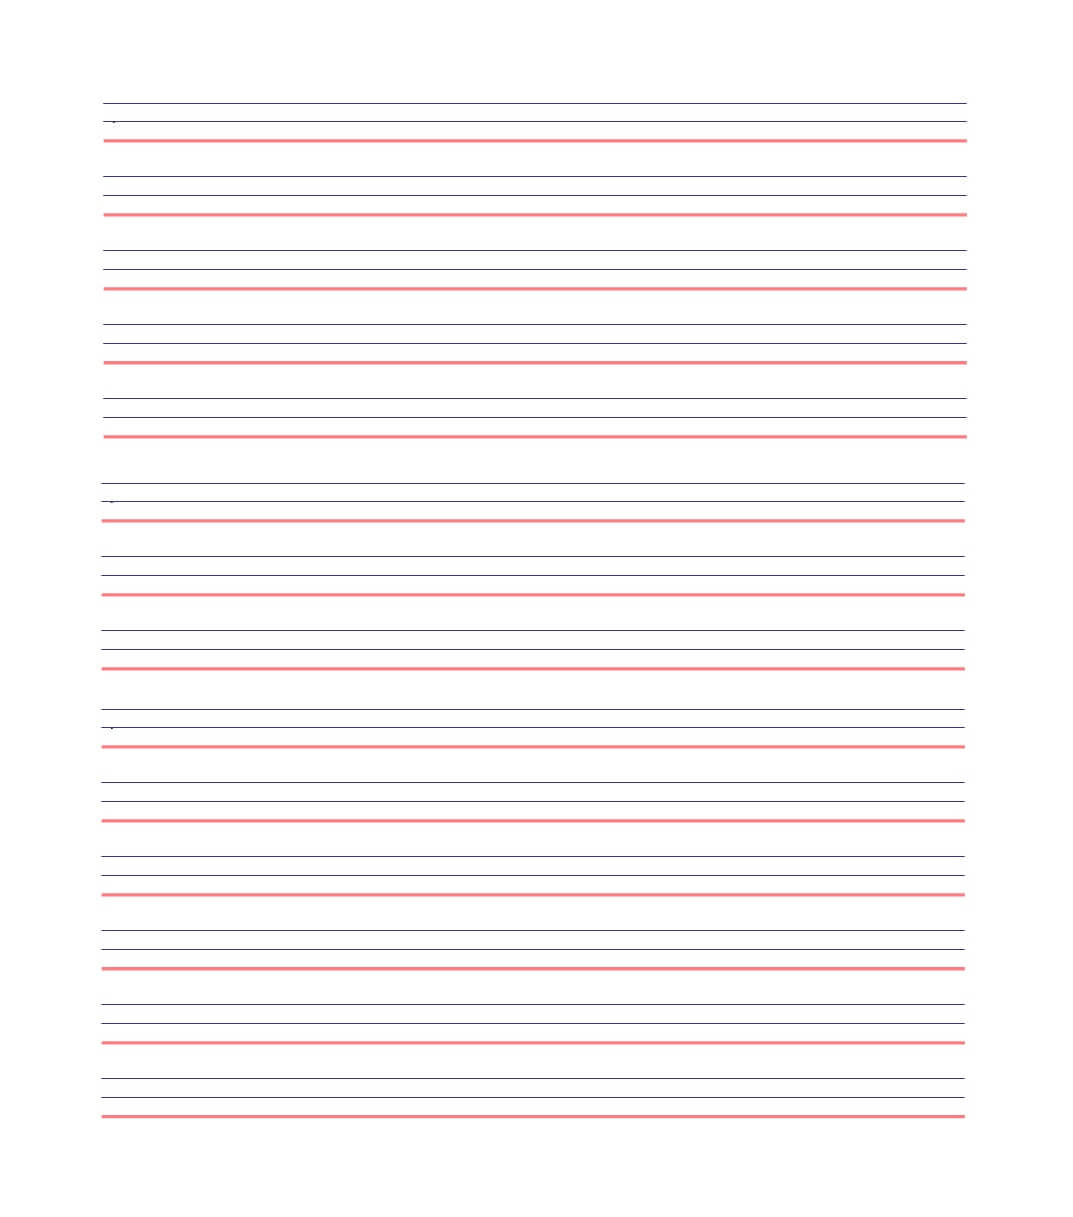 32 Printable Lined Paper Templates ᐅ Template Lab Intended For Ruled Paper Word Template